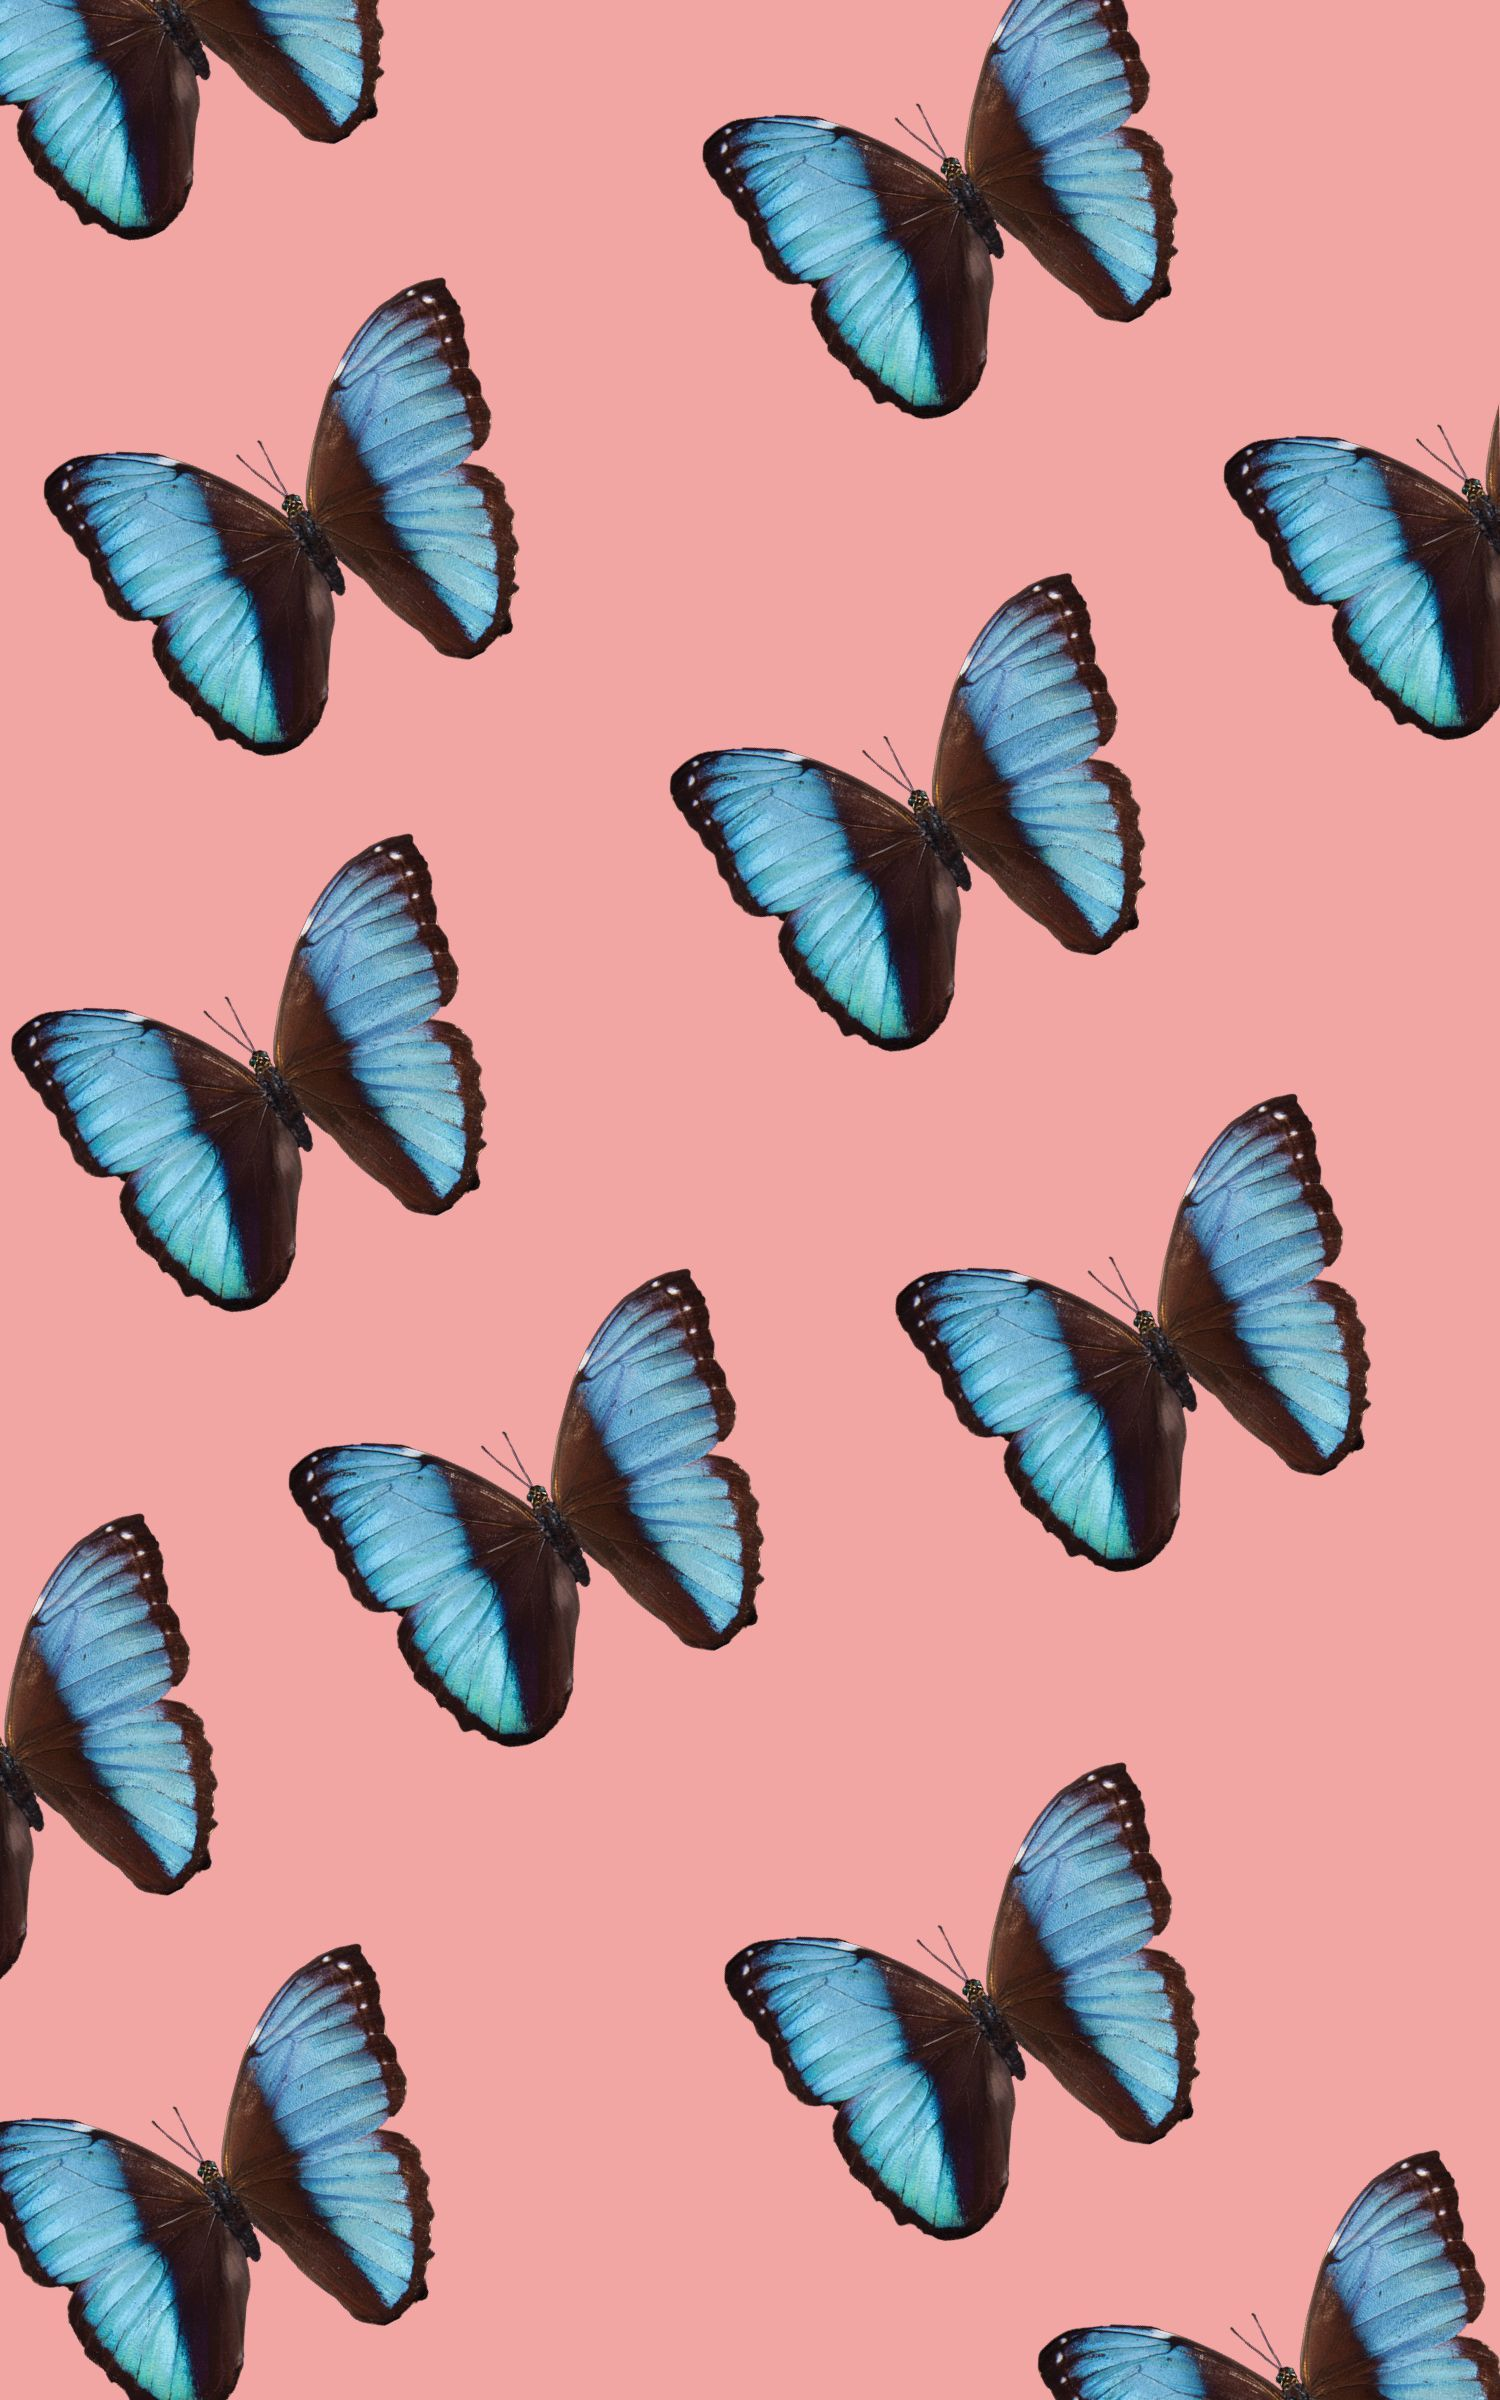 Blue Butterfly Tumblr : butterfly, tumblr, Butterfly, Wallpaper, Tumblr